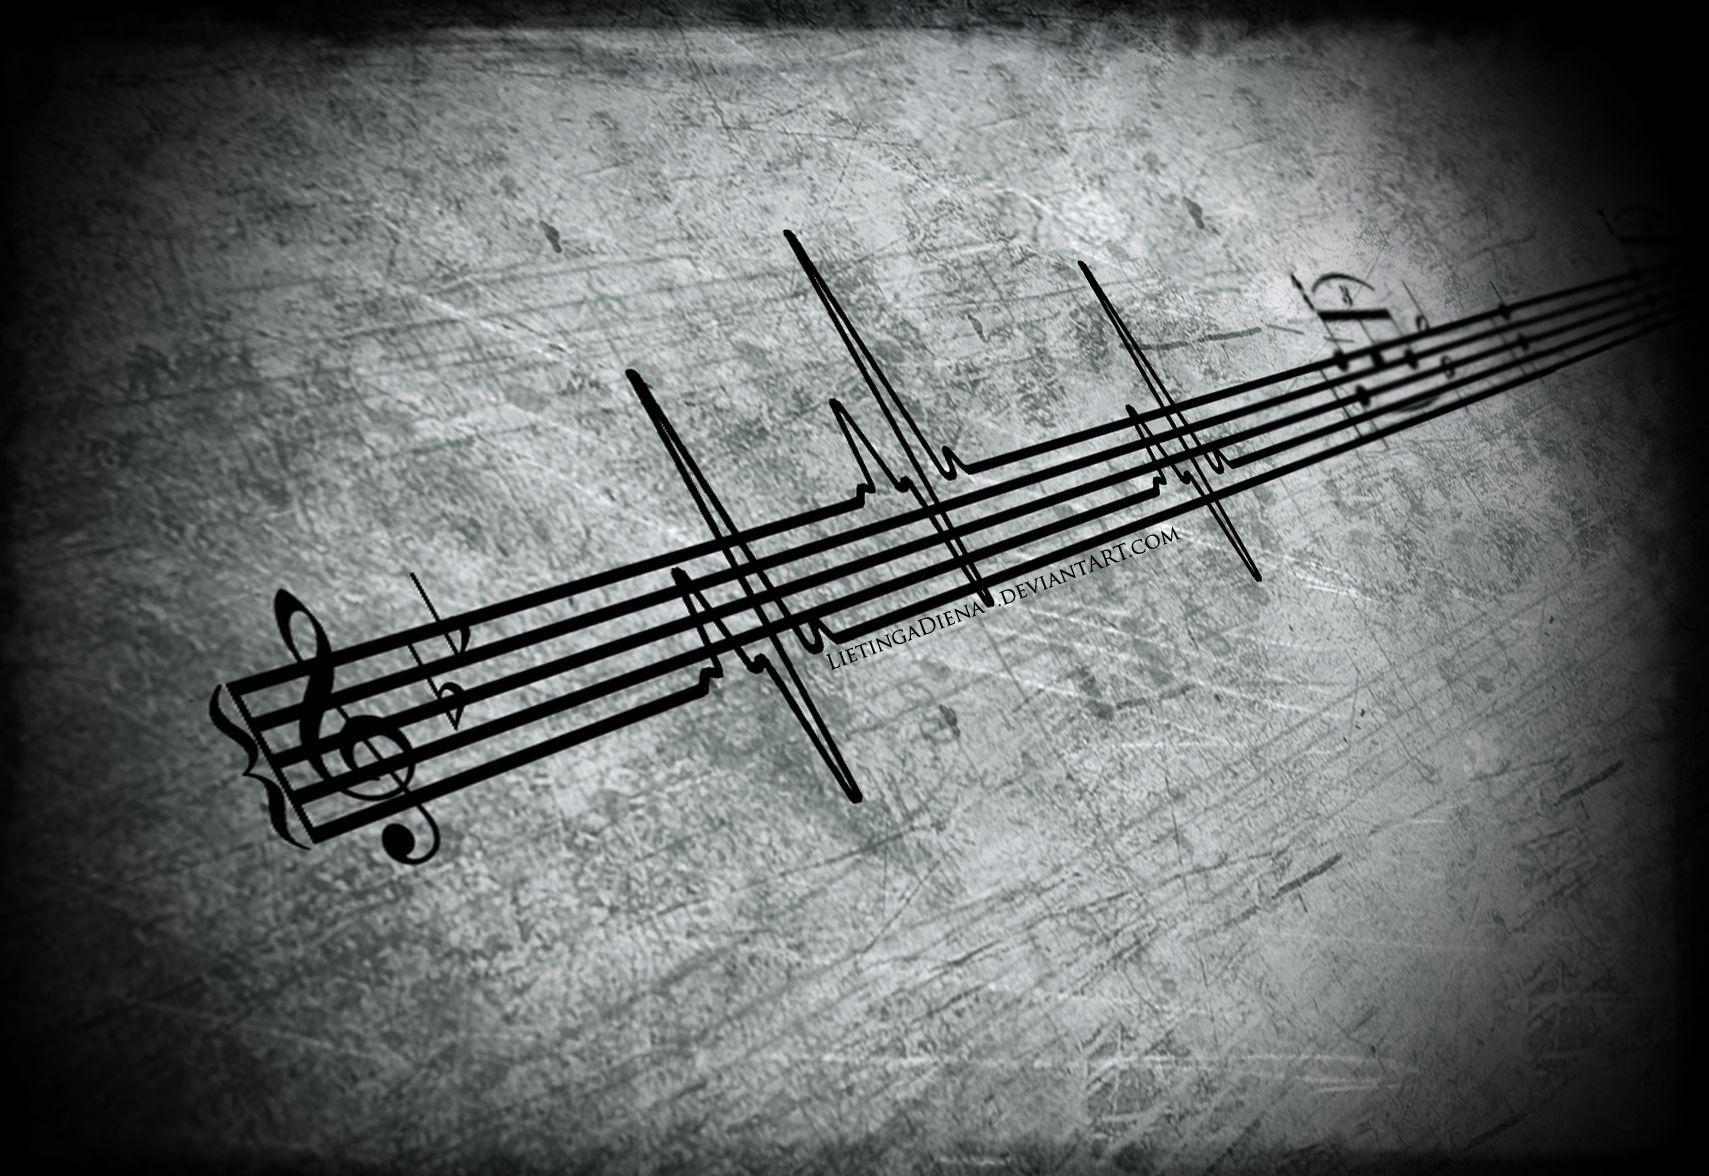 Old Music Score 4k Hd Desktop Wallpaper For 4k Ultra Hd Tv: Music Desktop Wallpapers